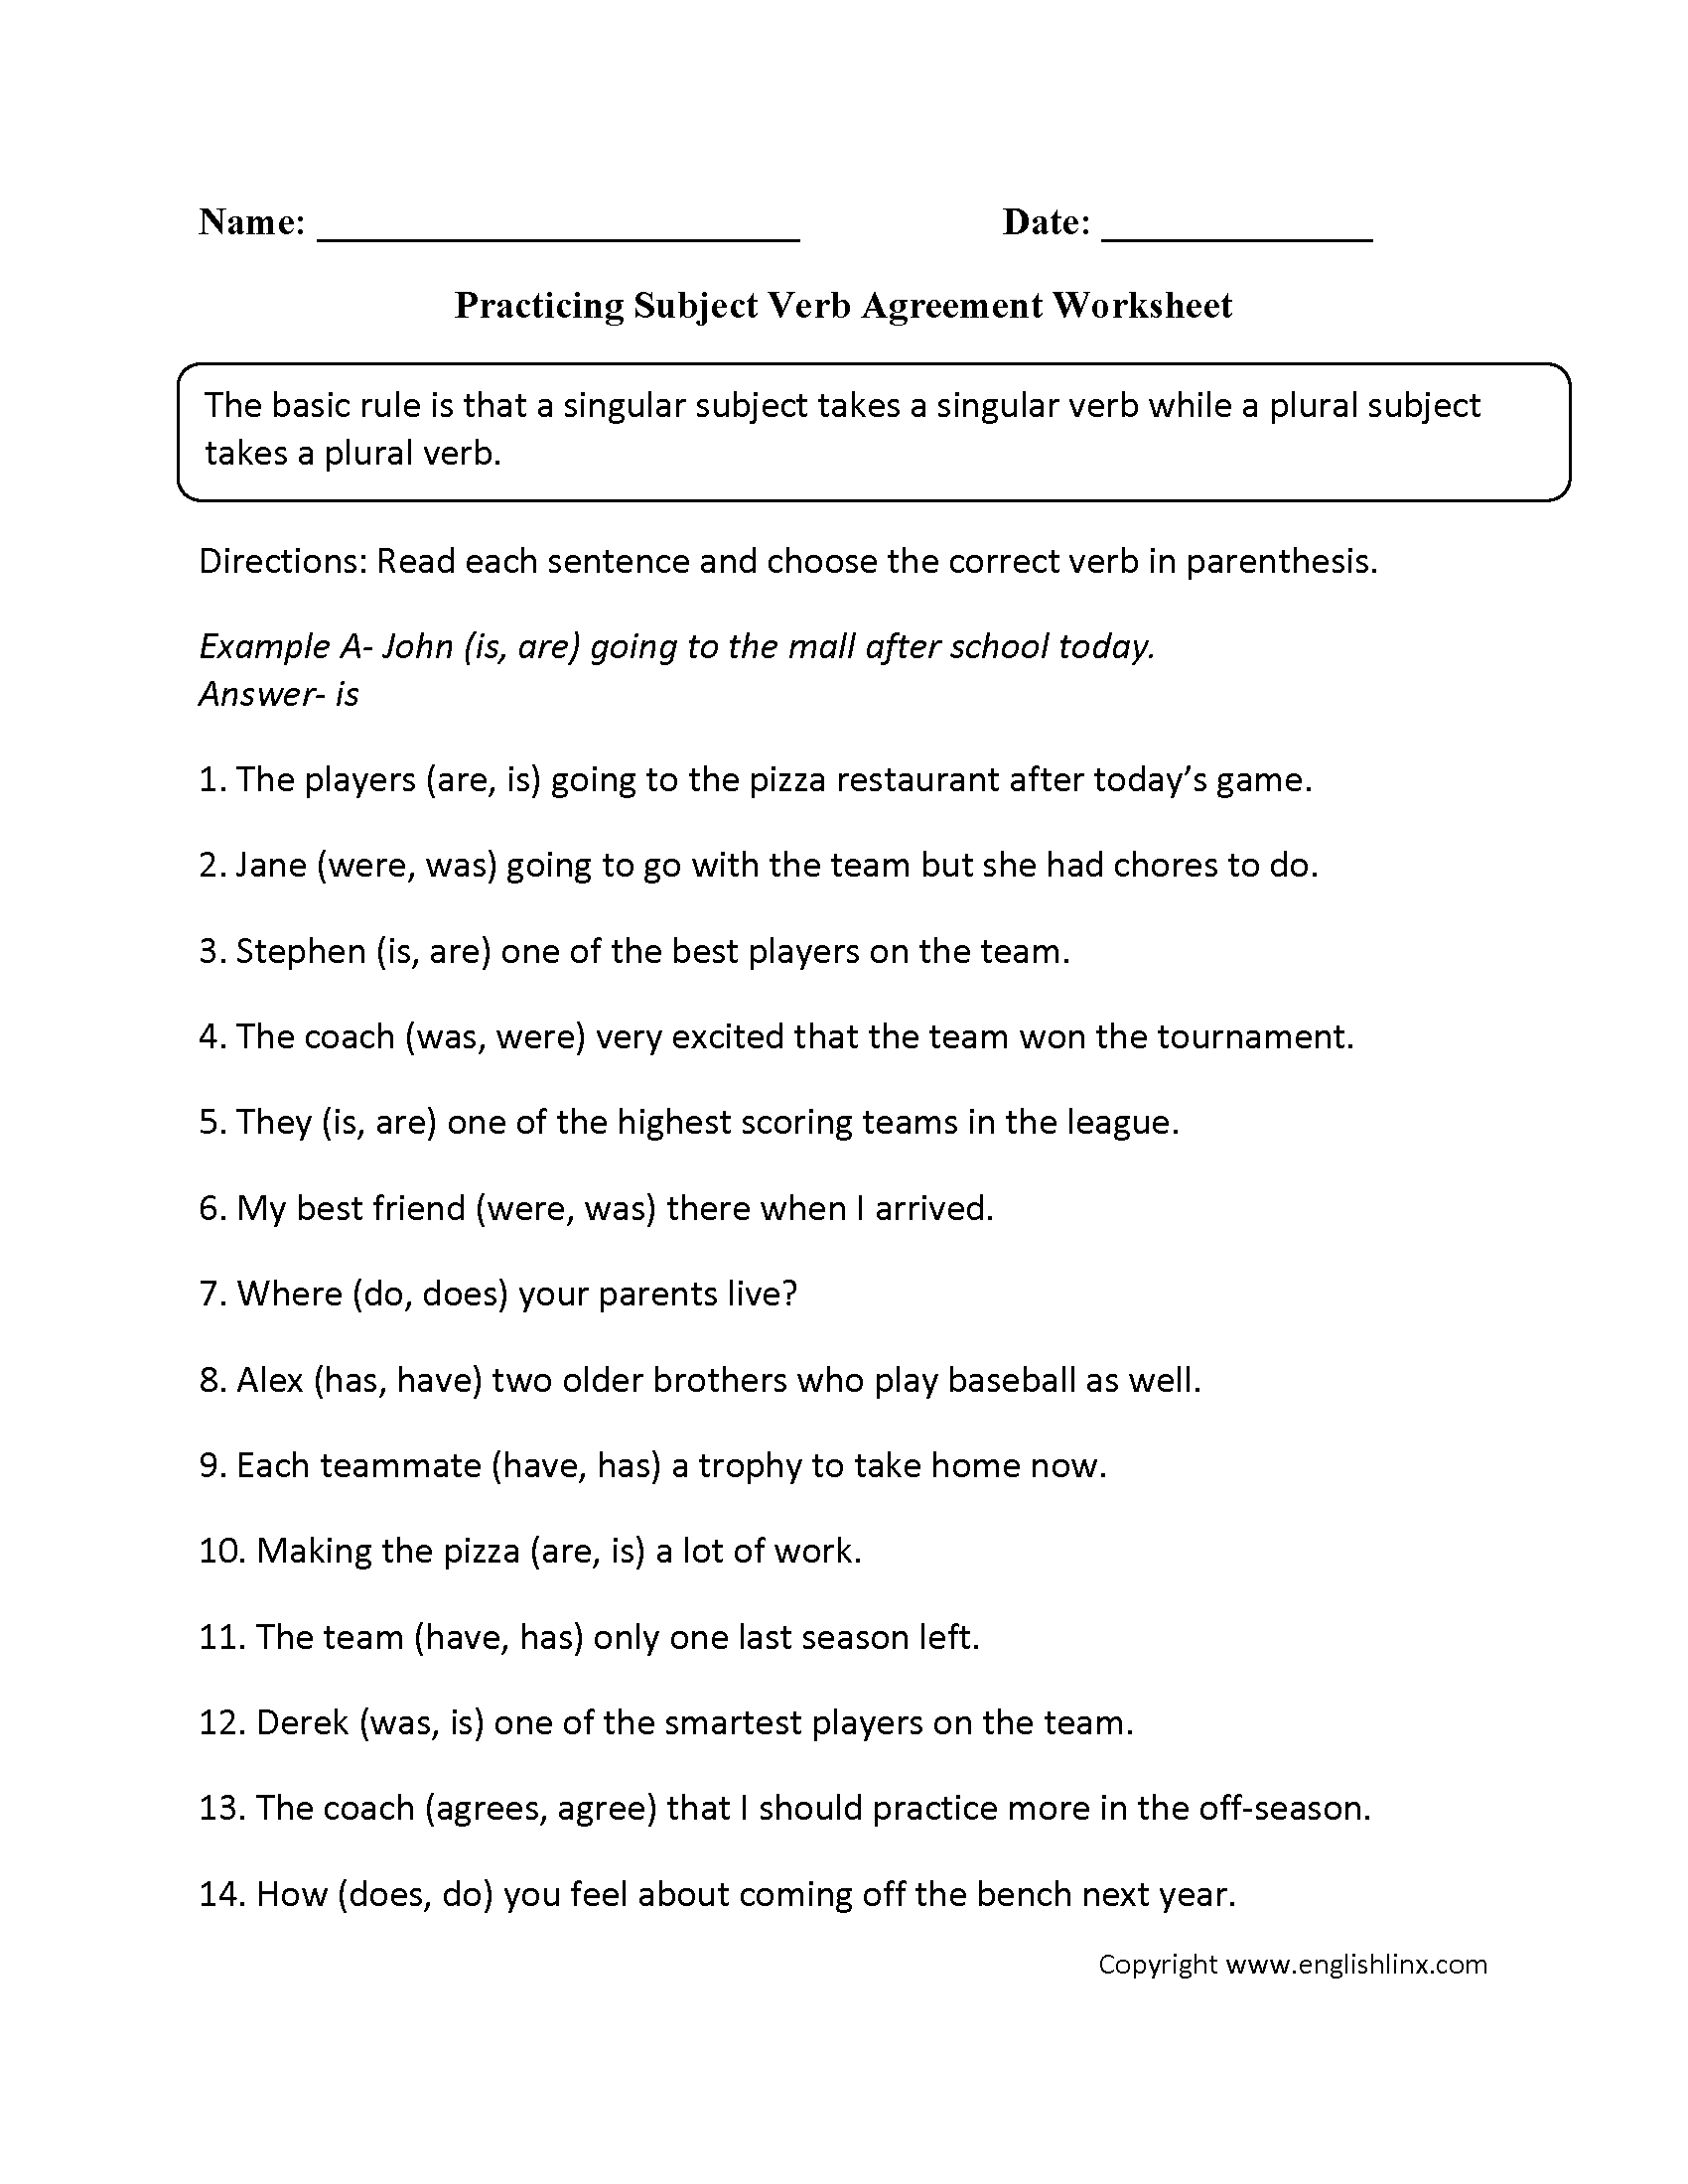 Worksheets Subject Verb Agreement Worksheet practicing subject verb agreement worksheet language pinterest is the rule that subjects and verbs must agree with another in number if plural the